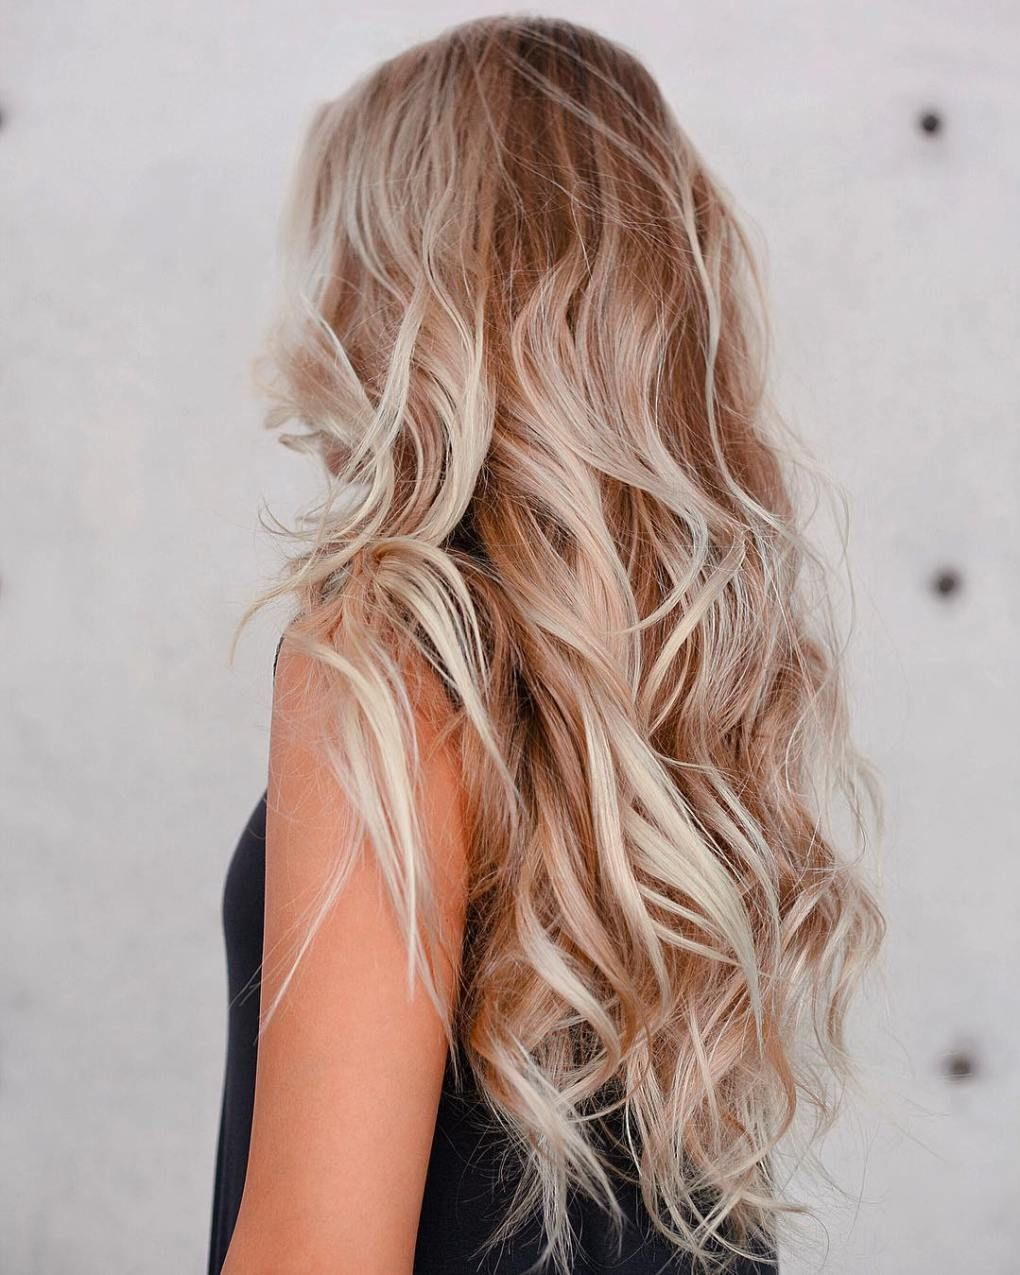 Beach Hairstyles Cool 20 Perfect Ways To Get Beach Waves In Your Hair  Beach Waves Beach